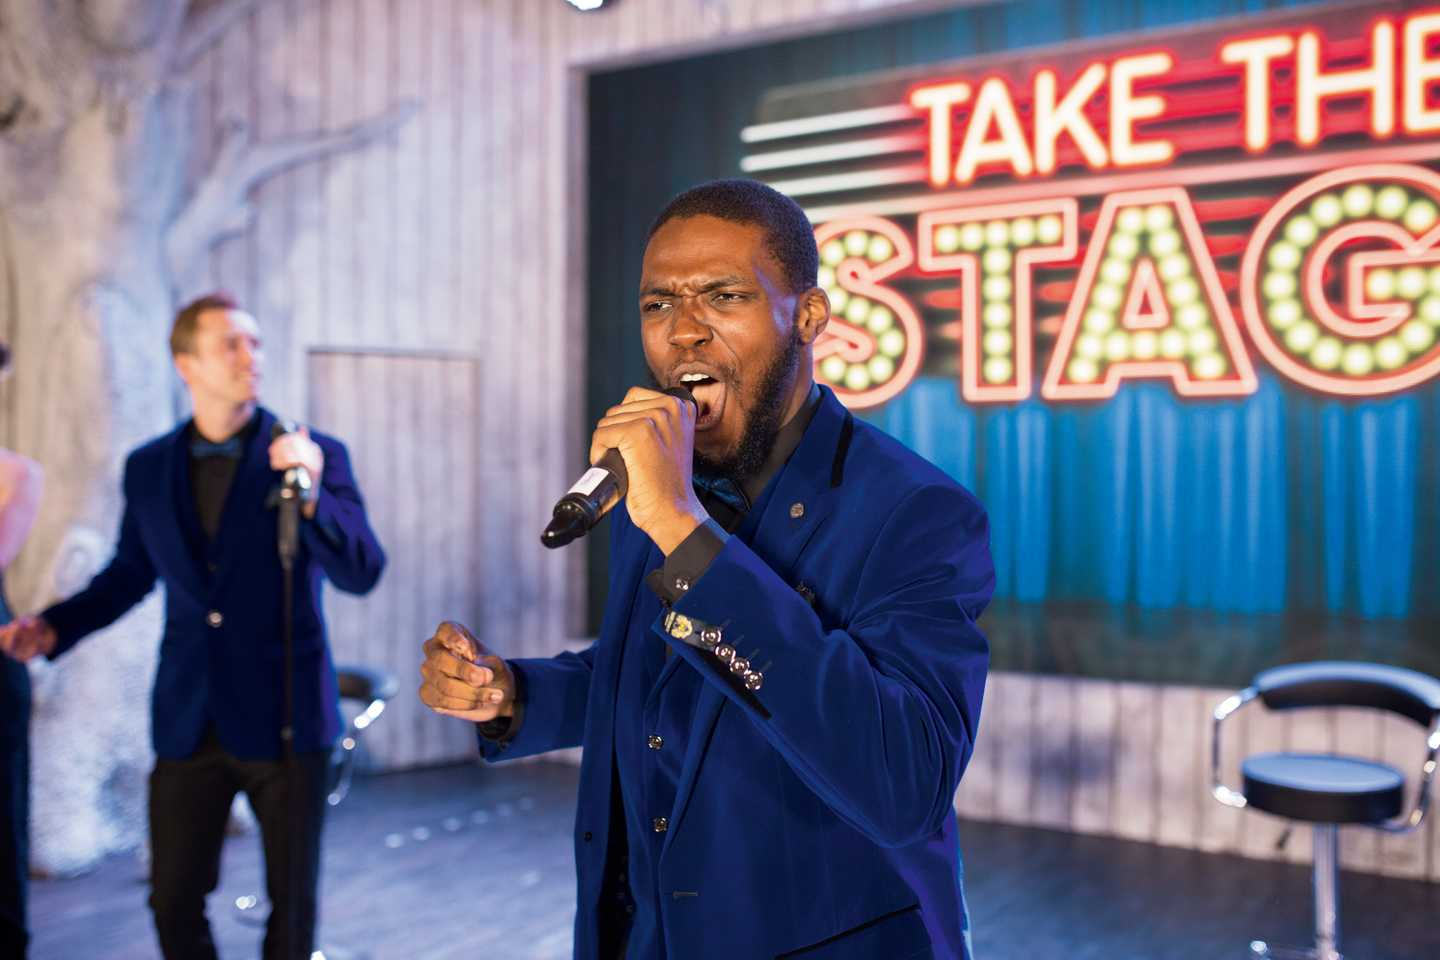 Man performing in Take the Stage